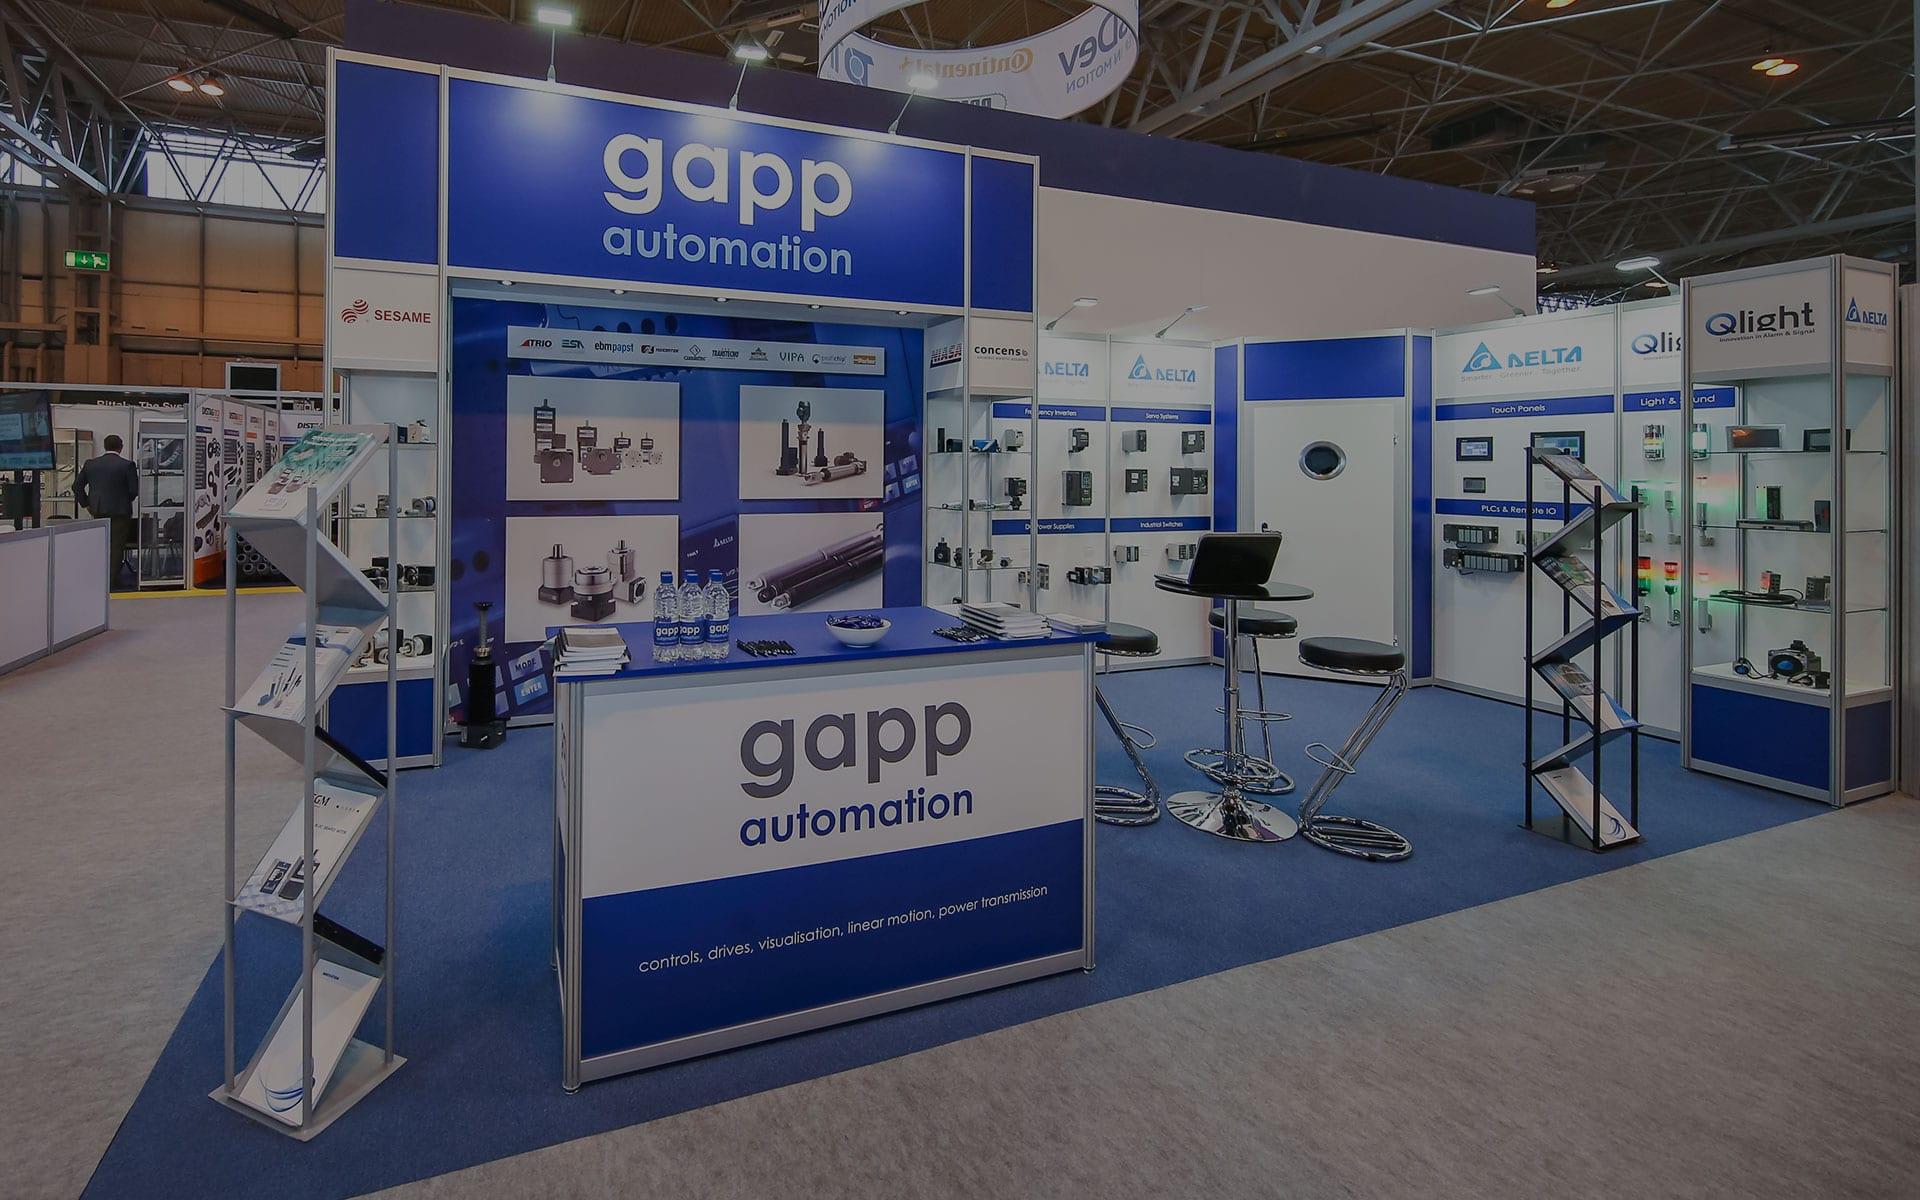 Custom Exhibition Stand Hire : Exhibition stand hire uk london birmingham nec manchester